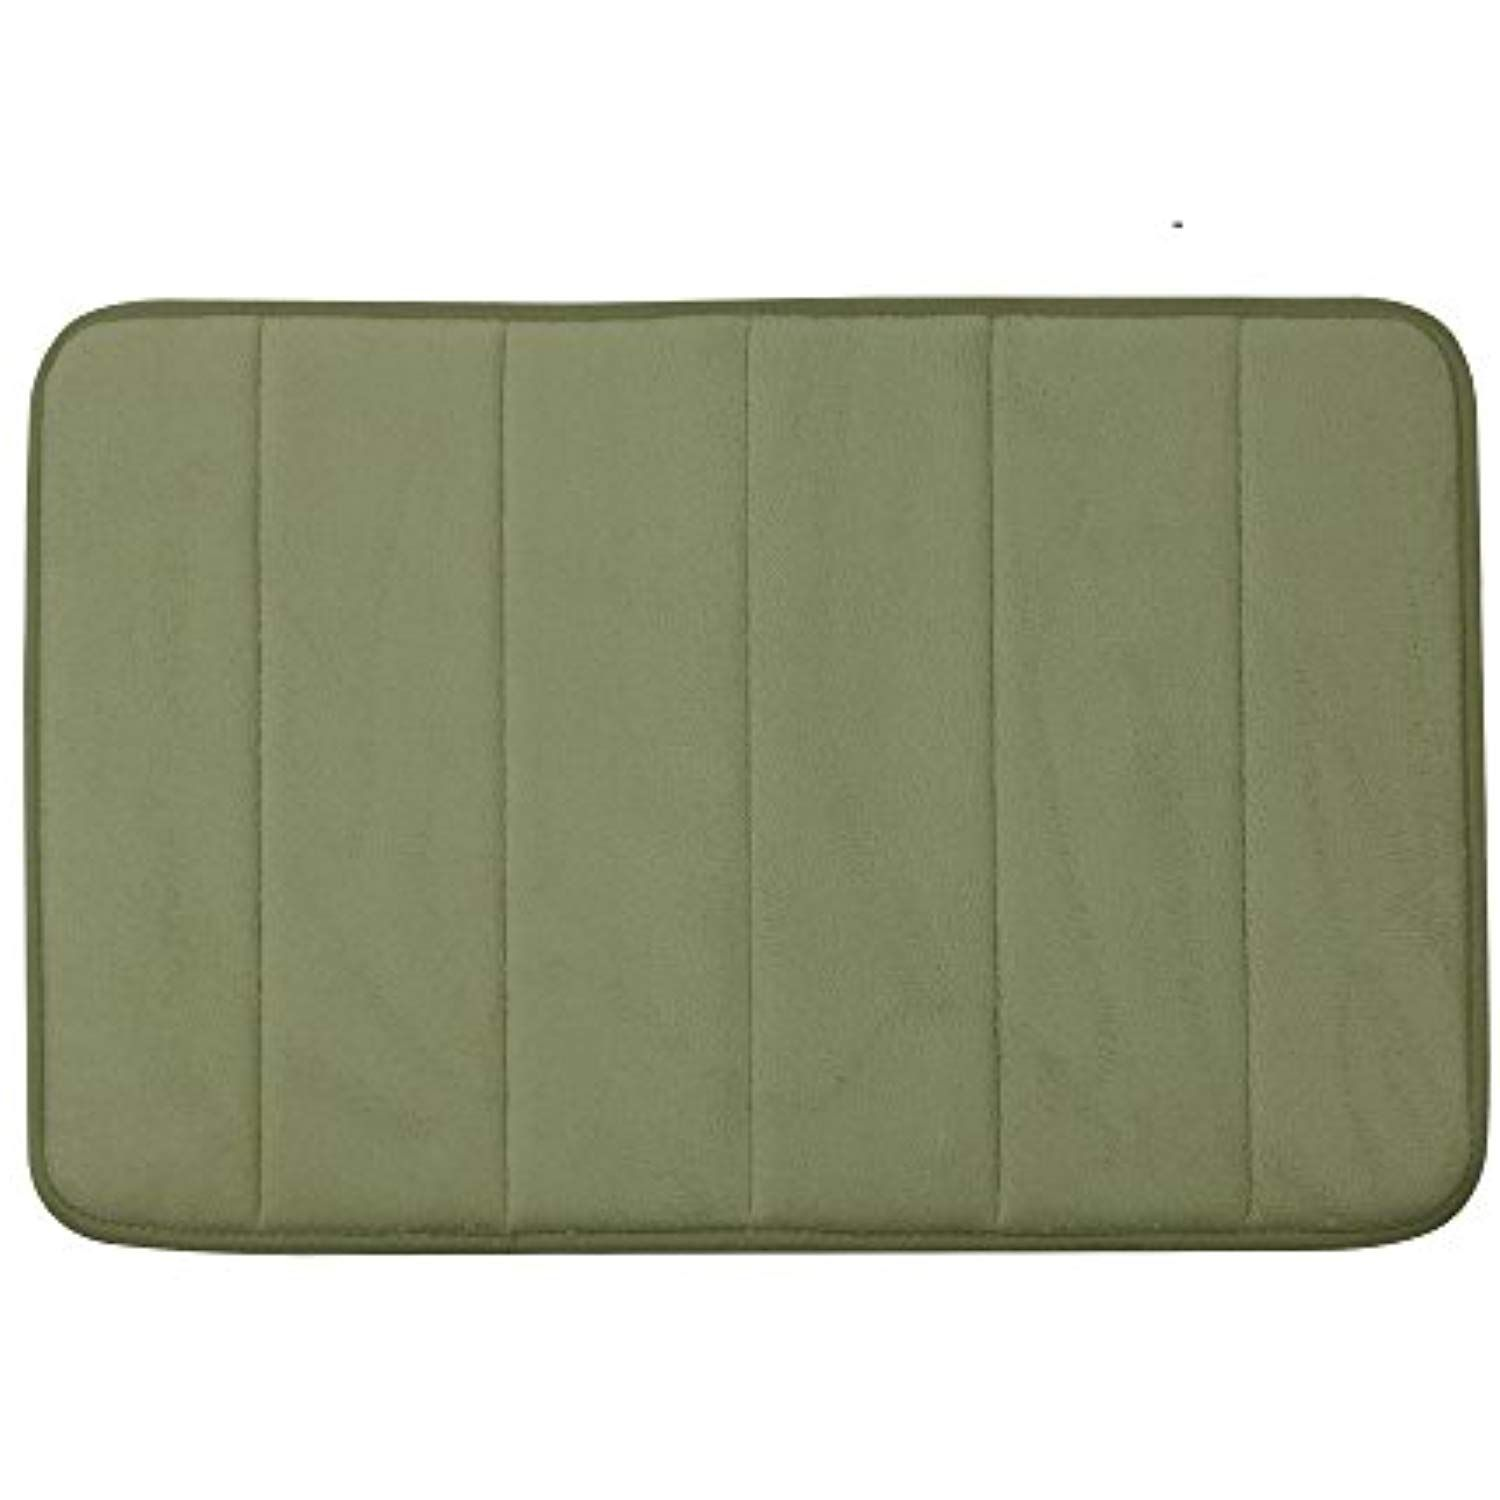 Bath Rug Famibay Memory Foam Bath Mat Non Slip Sbr Rubber Backing